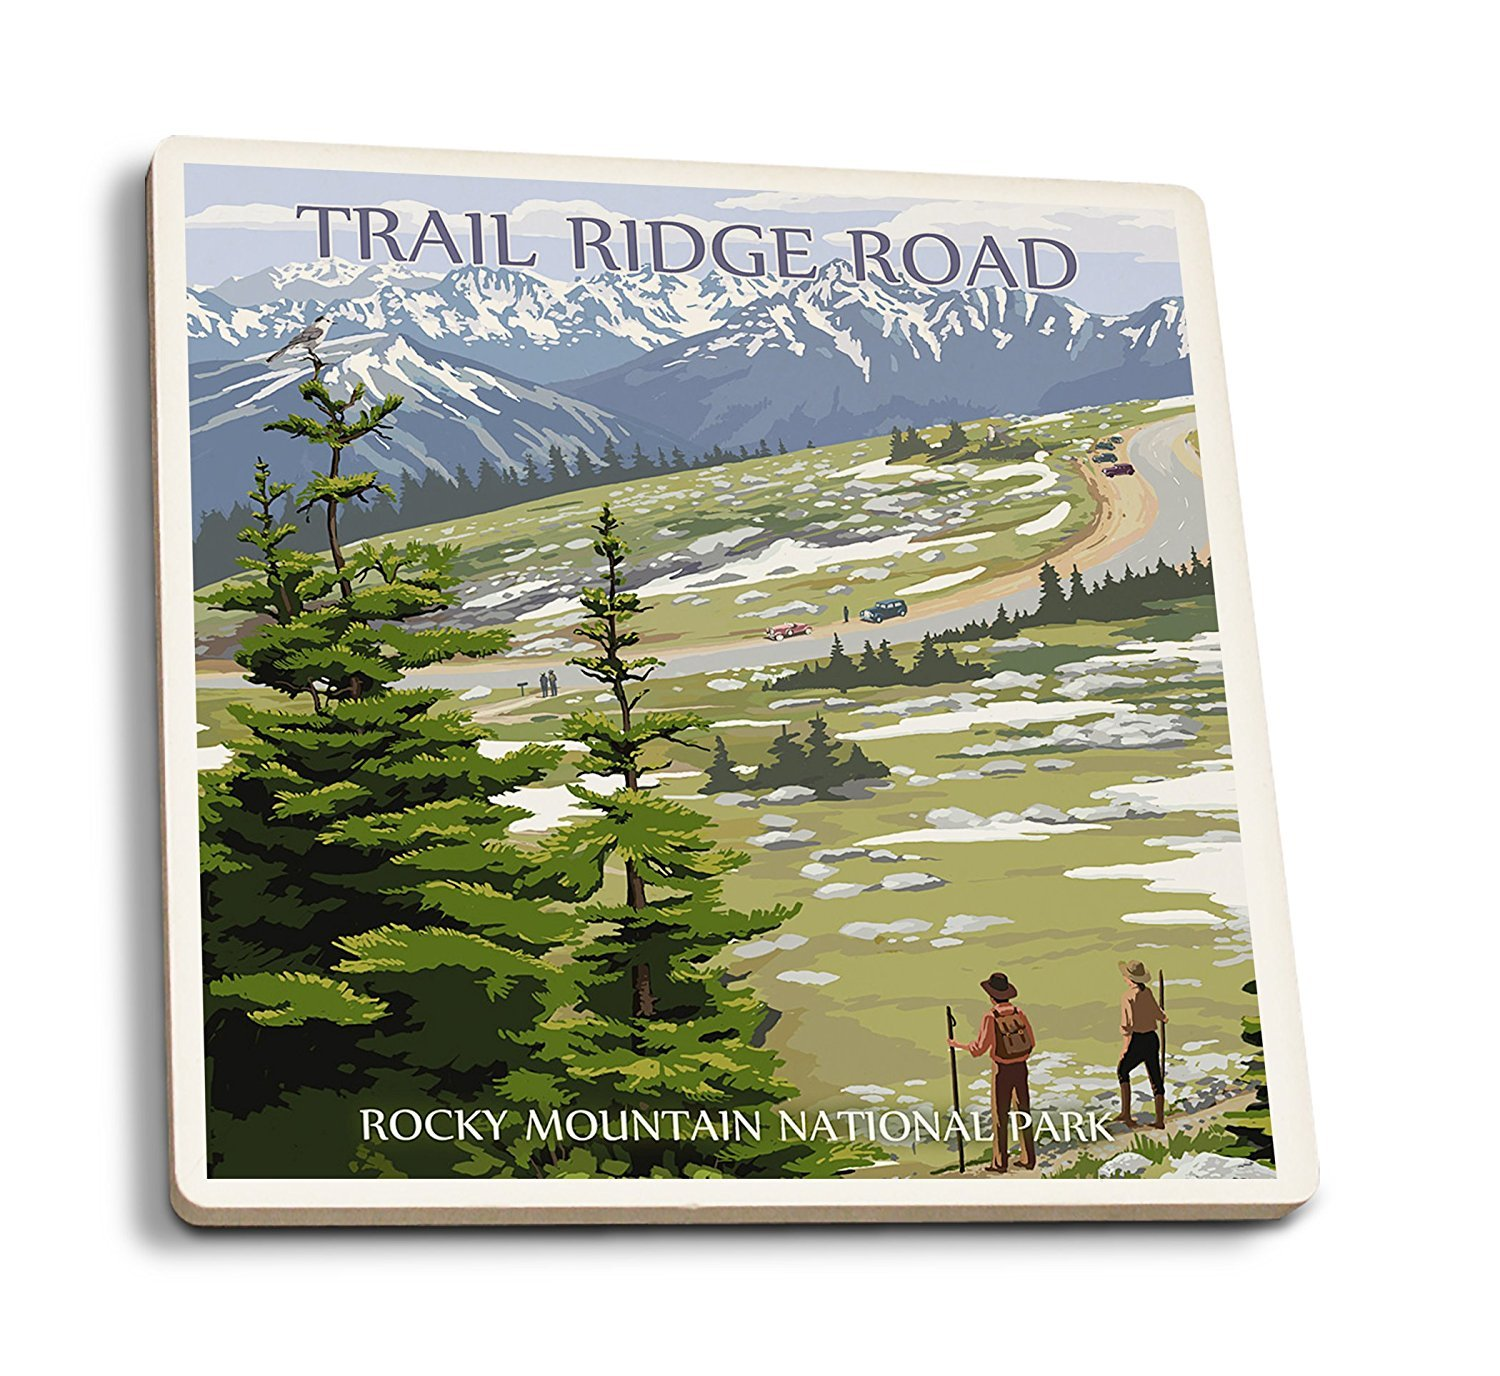 Trail Ridge Road – ロッキーマウンテン国立公園 4 Coaster Set LANT-33682-CT B01FOLUQ4E 4 Coaster Set4 Coaster Set